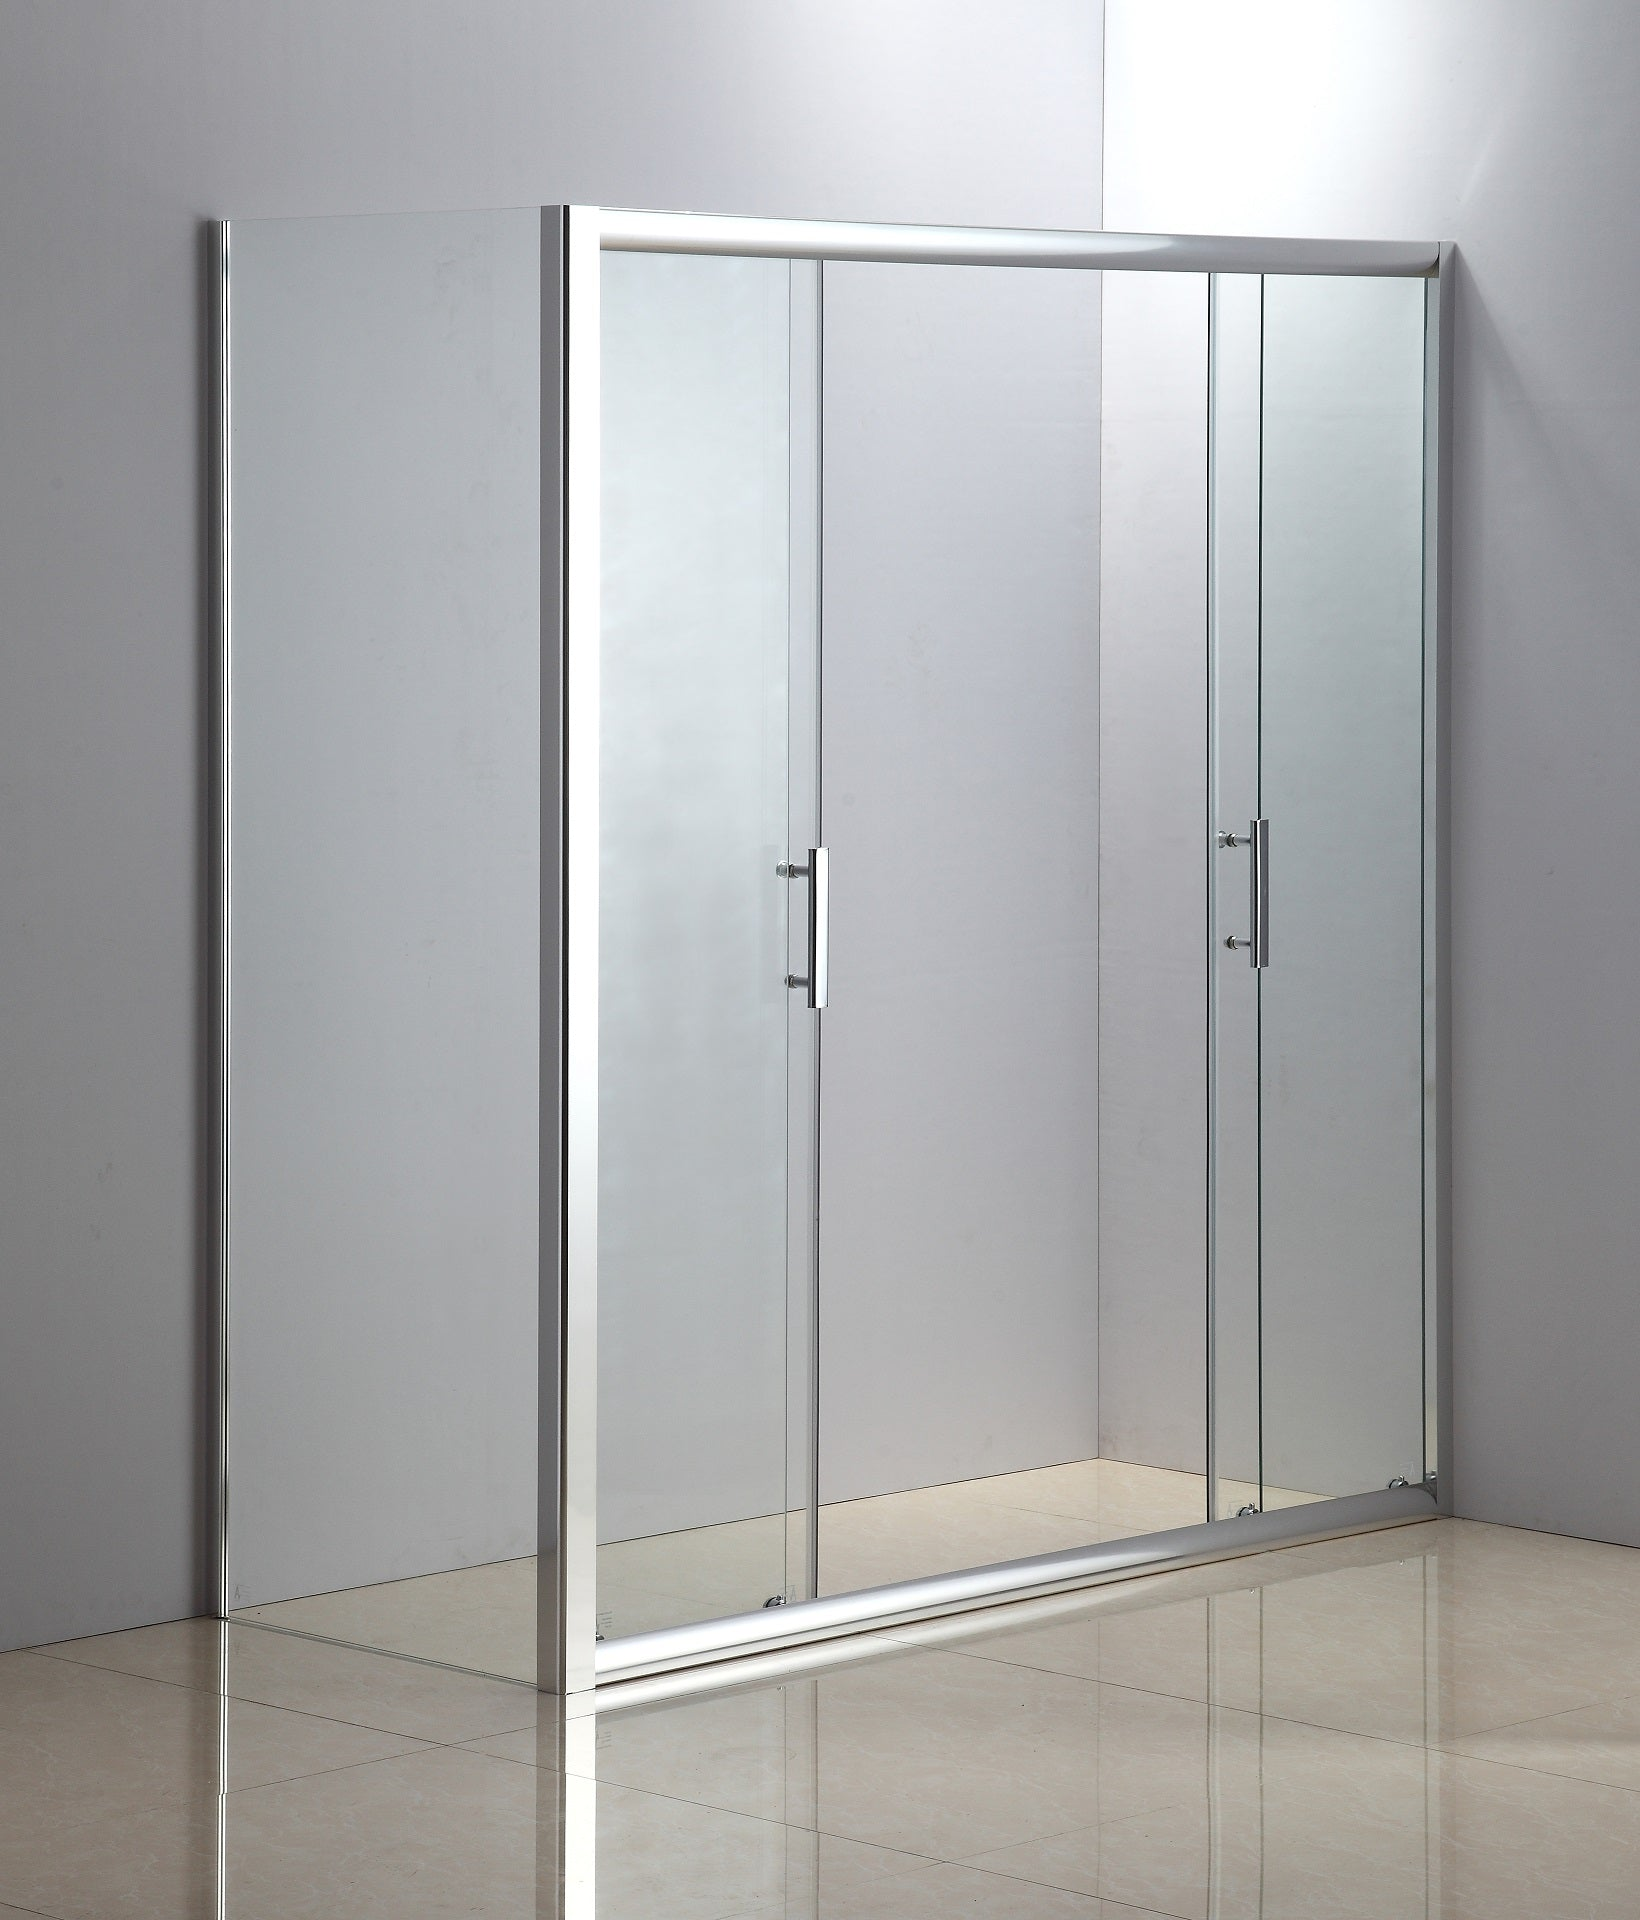 1700 X 700 Sliding Door Safety Glass Shower Screen By Della